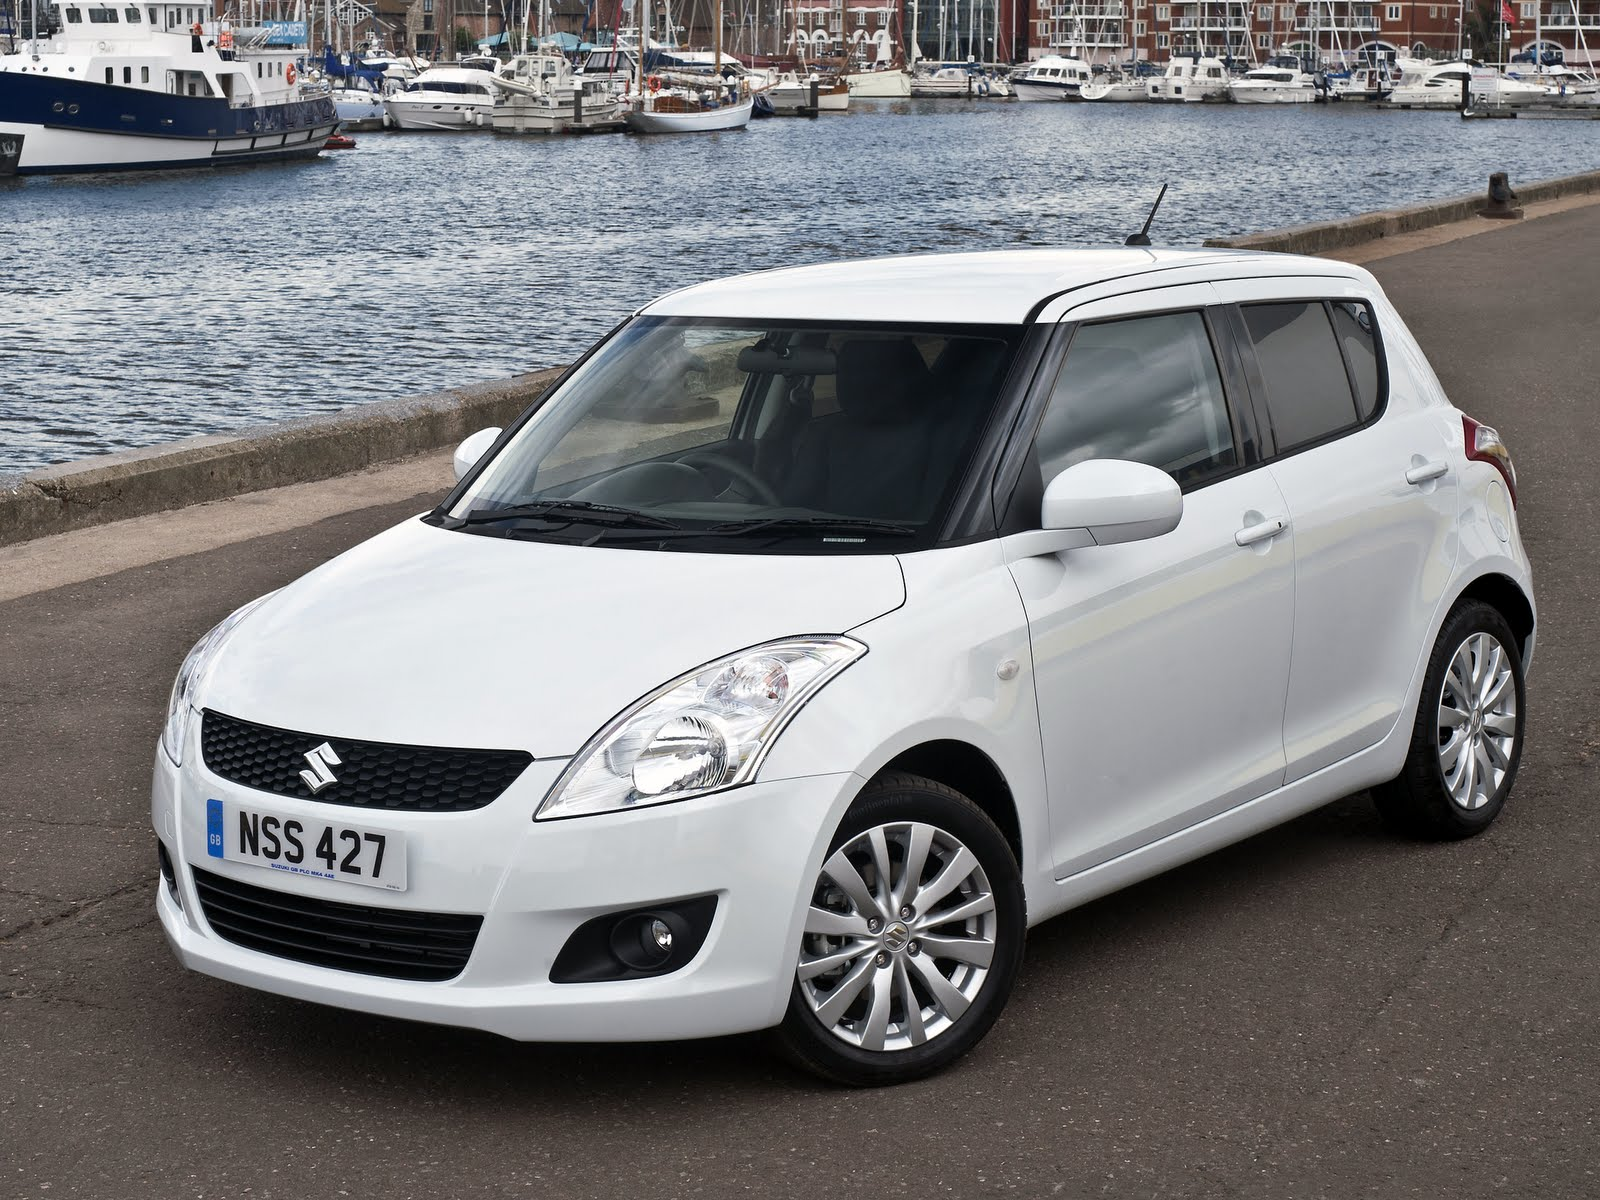 irish car travel magazine review new suzuki swift. Black Bedroom Furniture Sets. Home Design Ideas